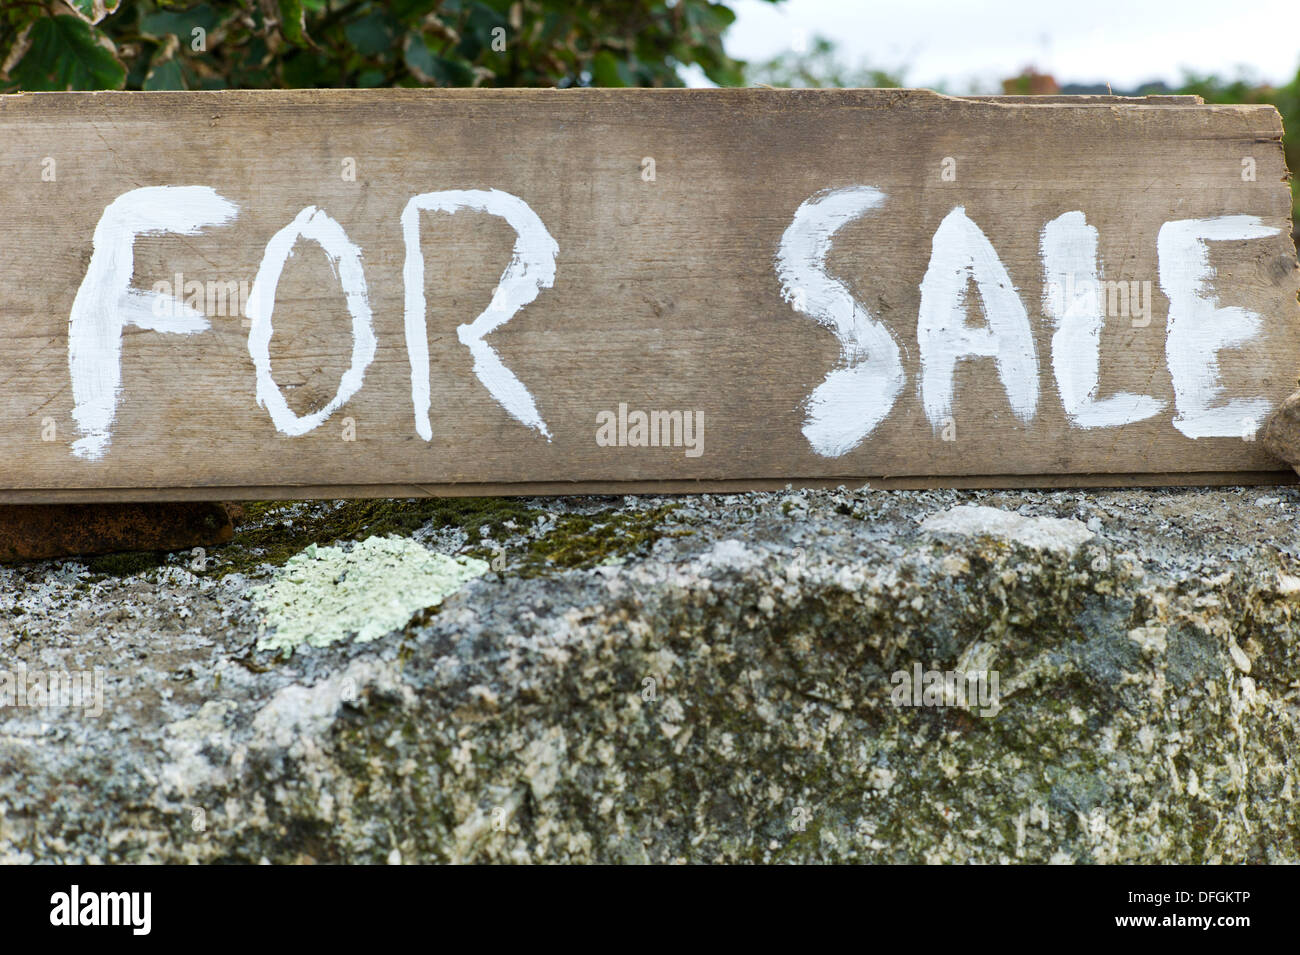 Wooden painted for sale sign on granite wall in Cornwall Credit: David Levenson/Alamy - Stock Image